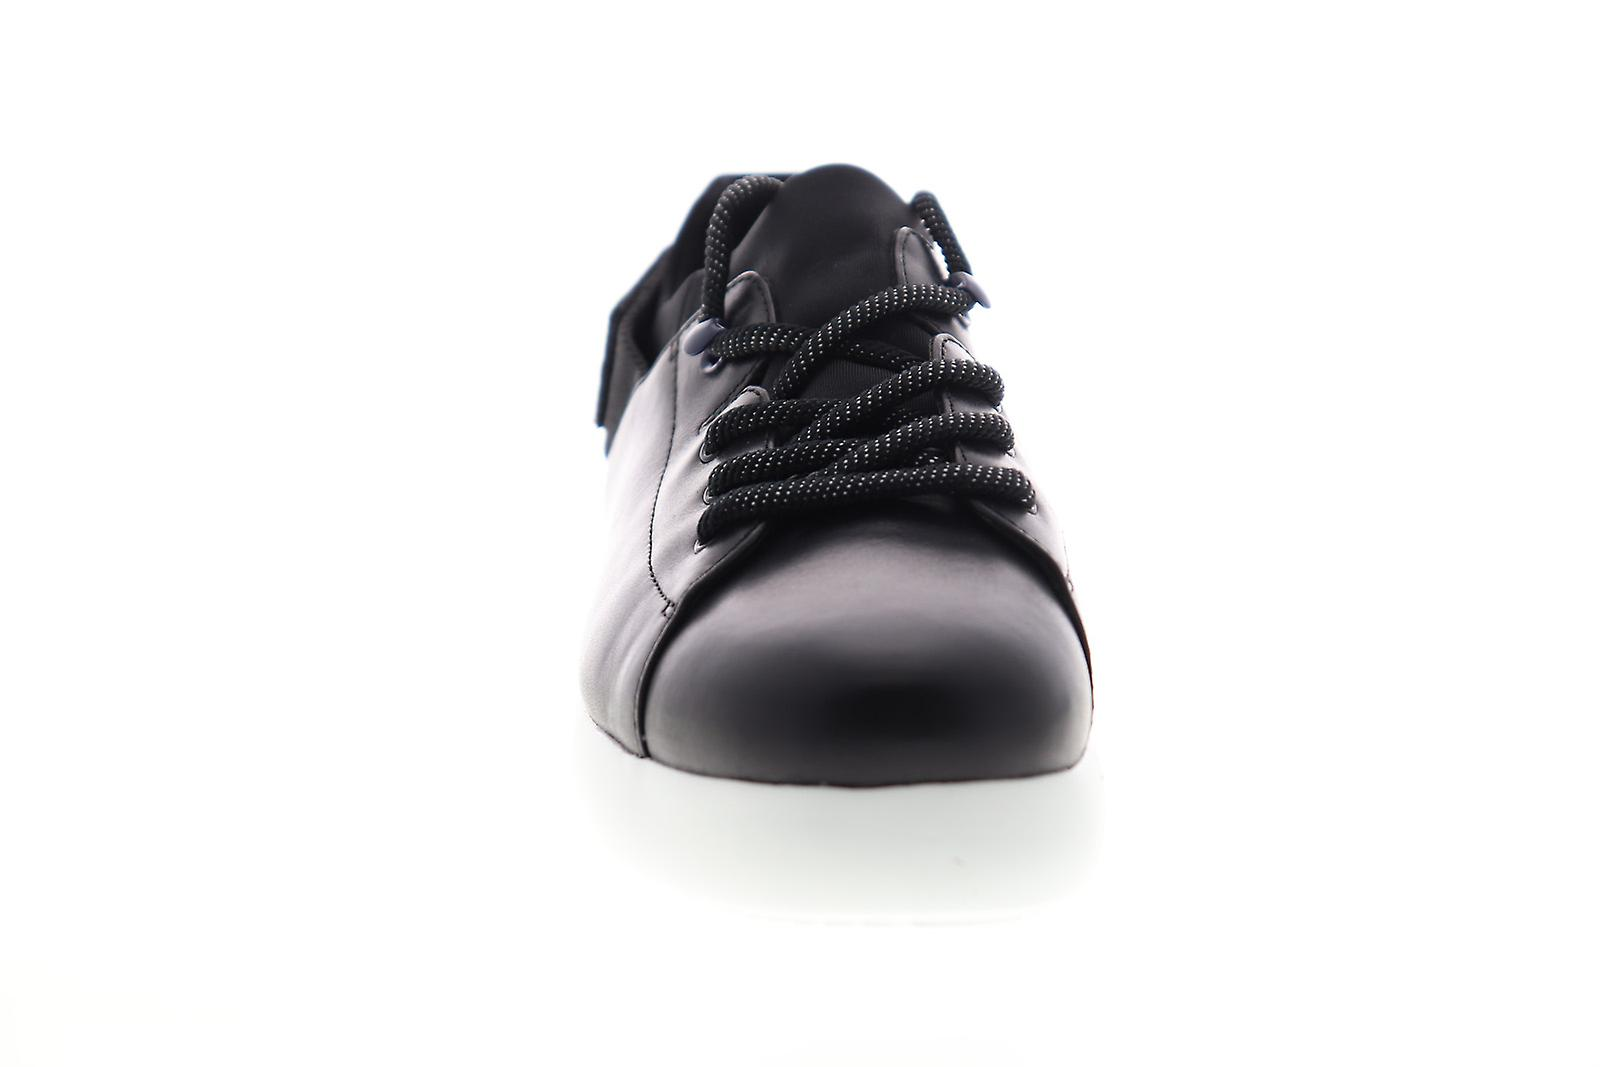 Camper Fiss Femmes Black Leather Lace Up Low Top Sneakers Chaussures - Remise particulière